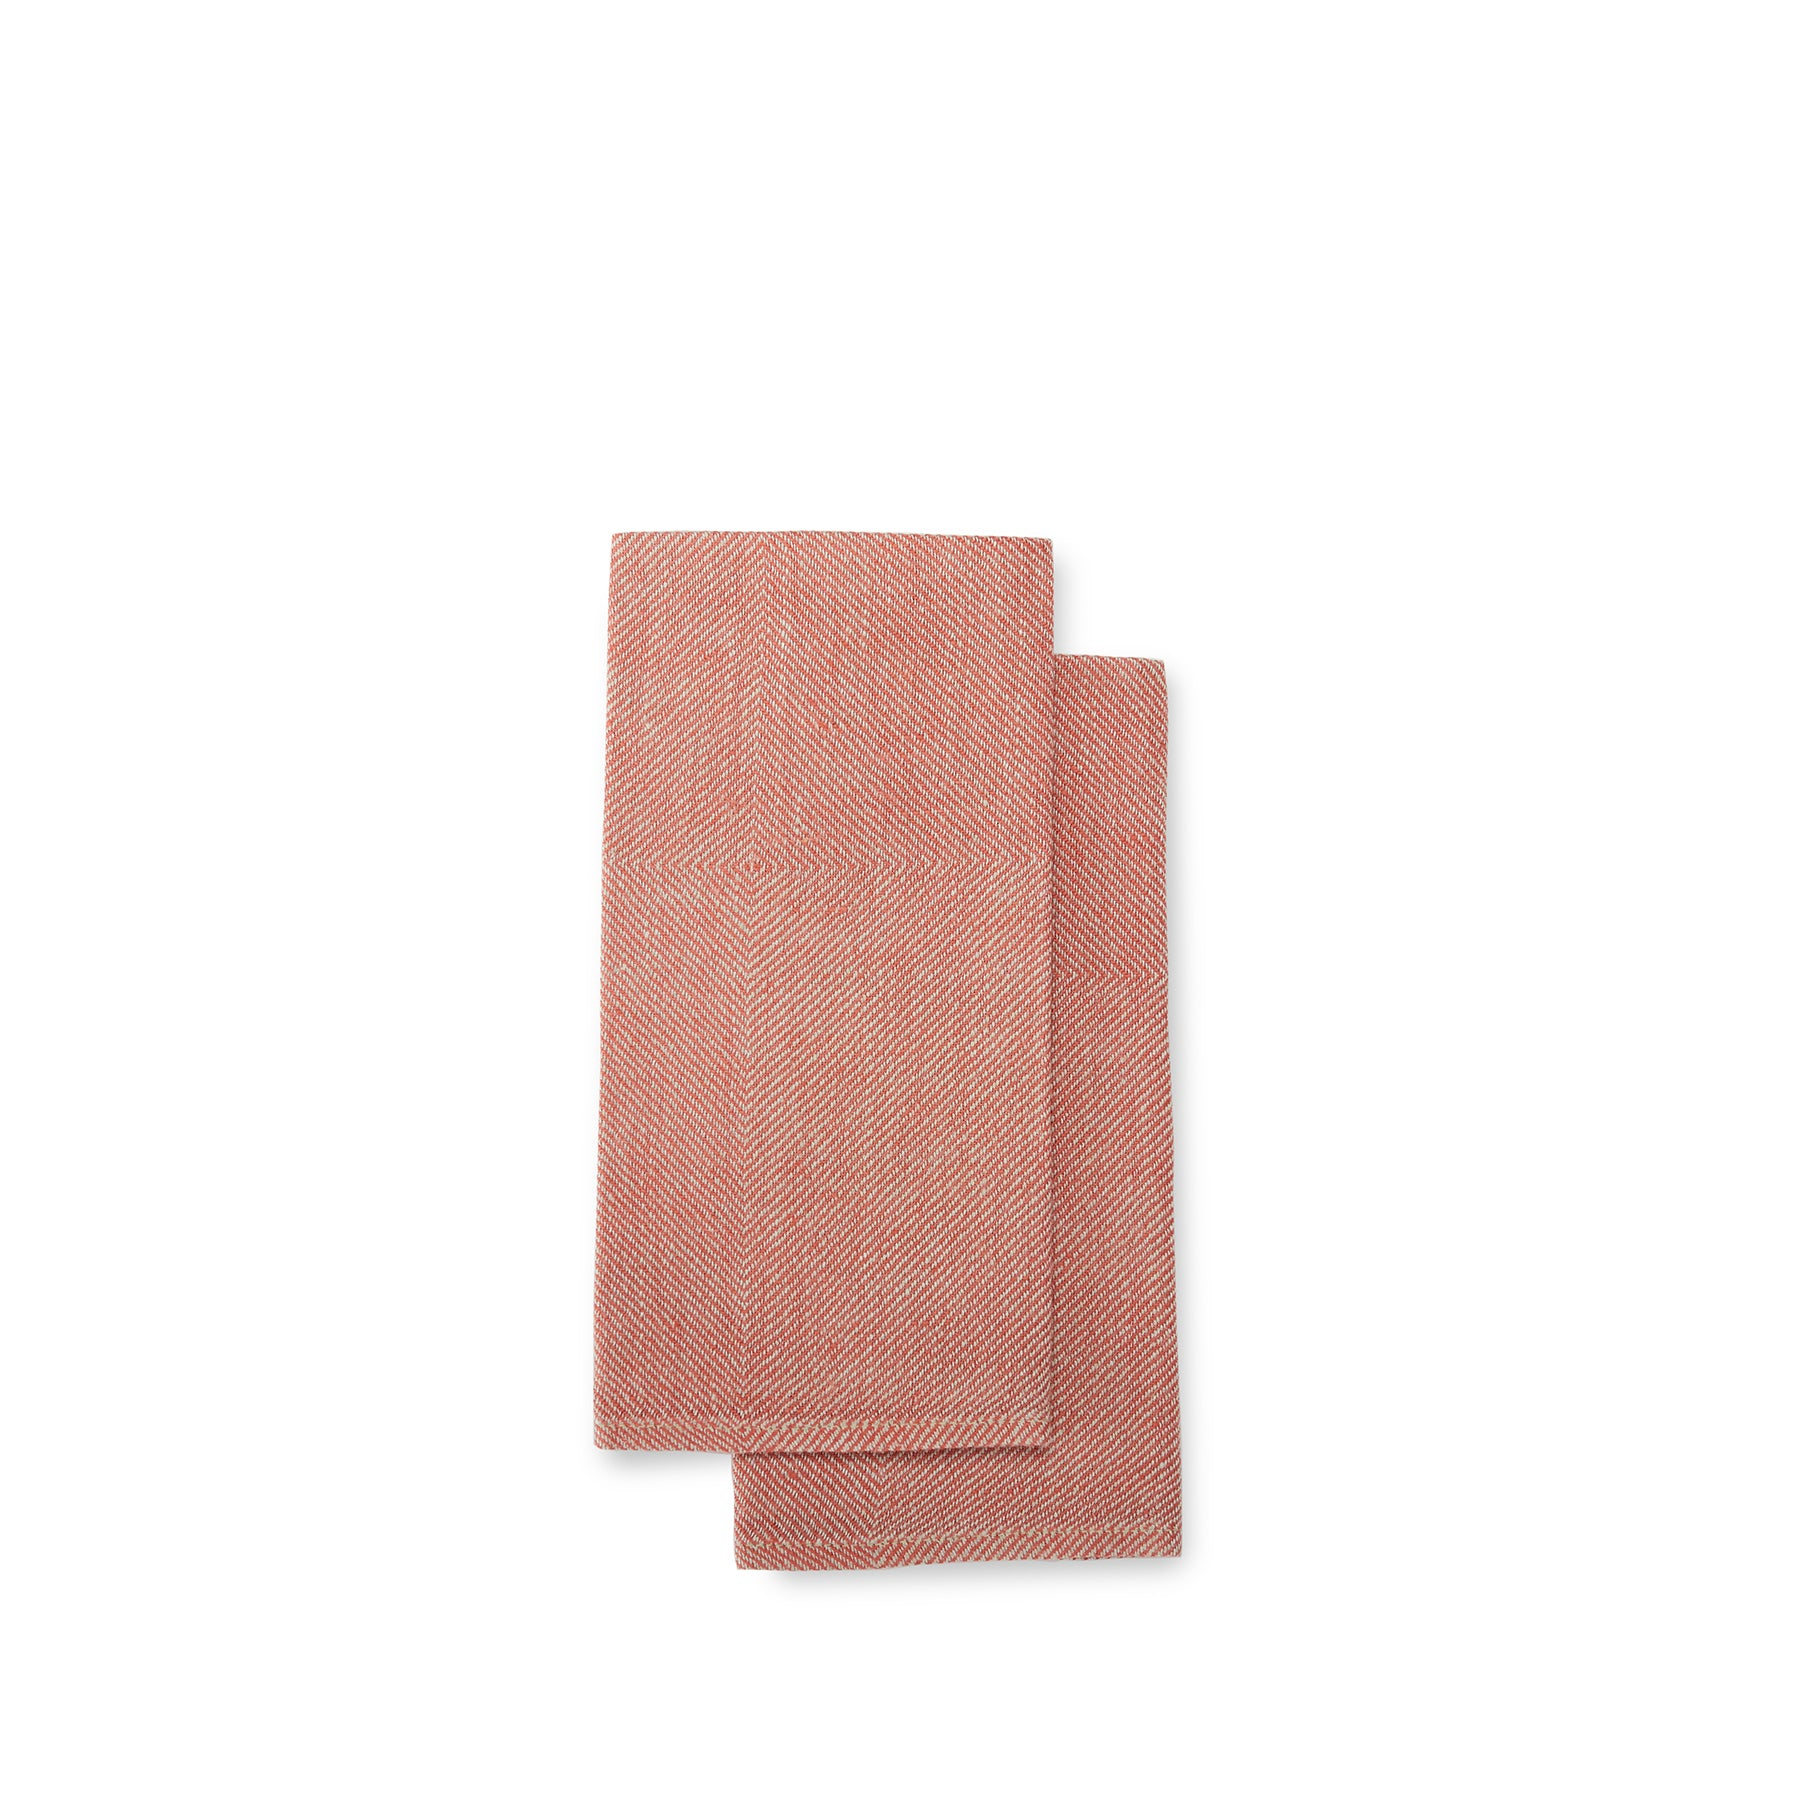 Kypert Napkins in Brick Red (Set of 2) Zoom Image 1